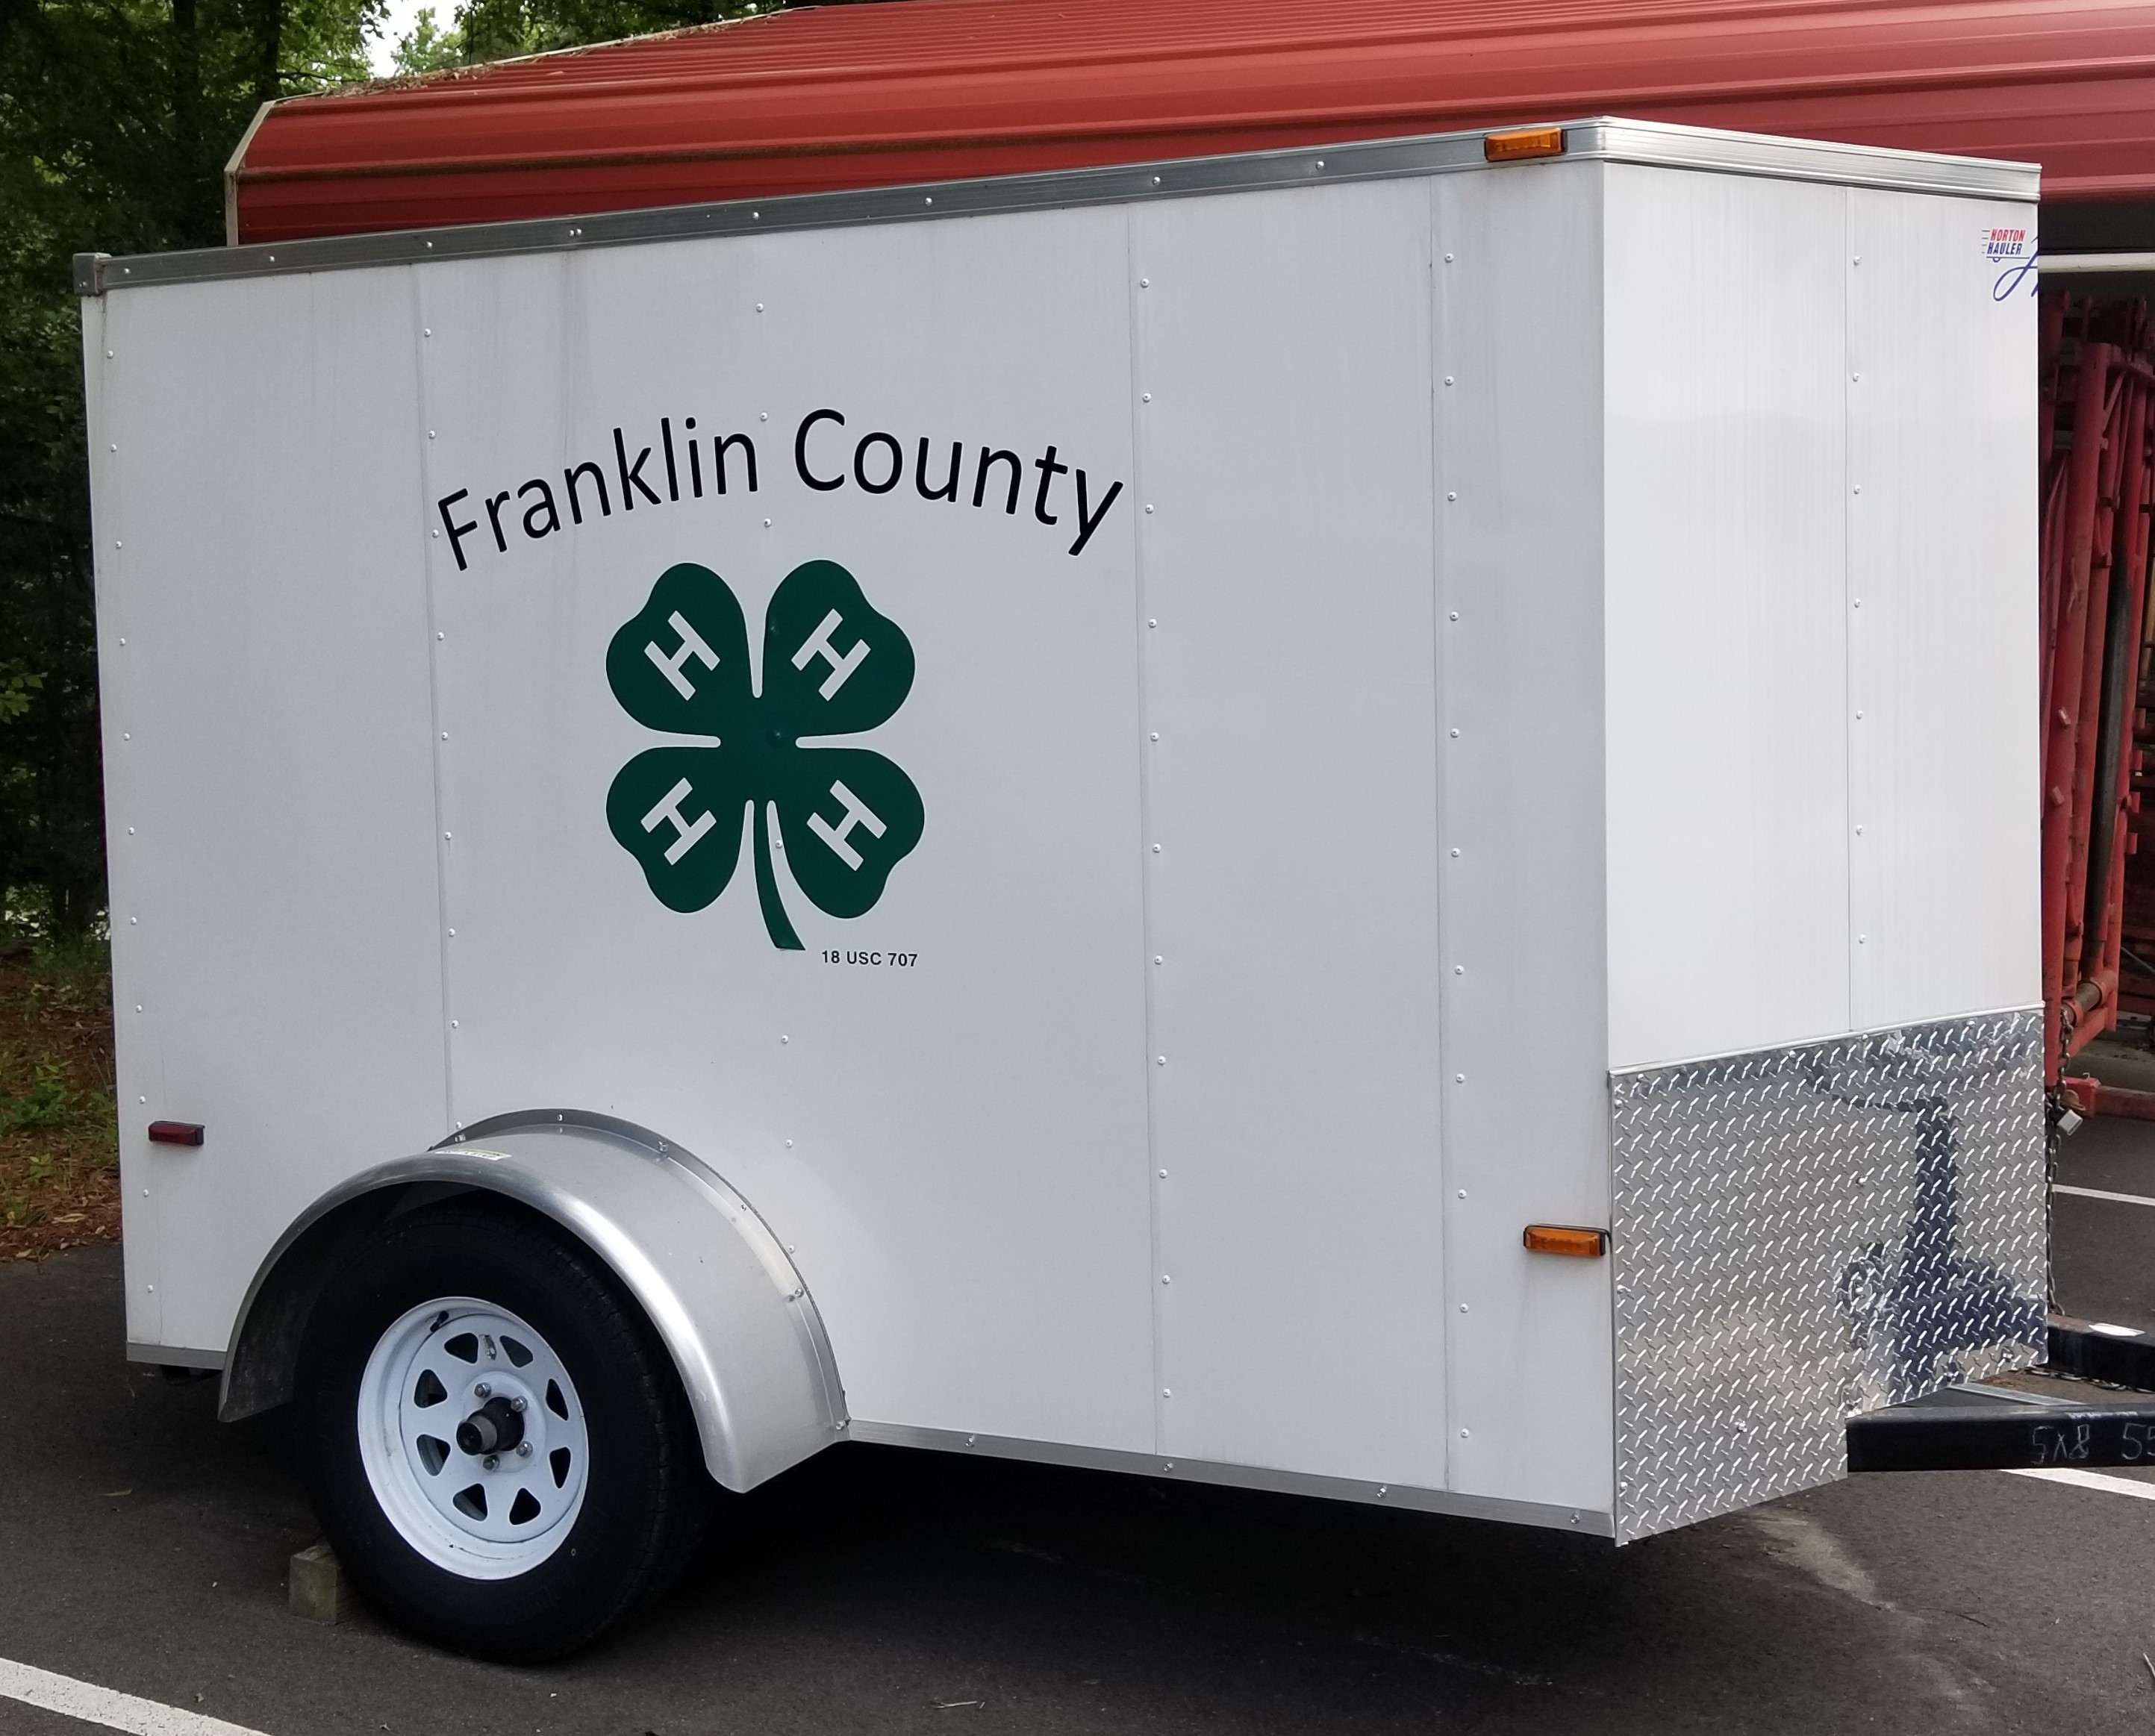 Franklin County 4H